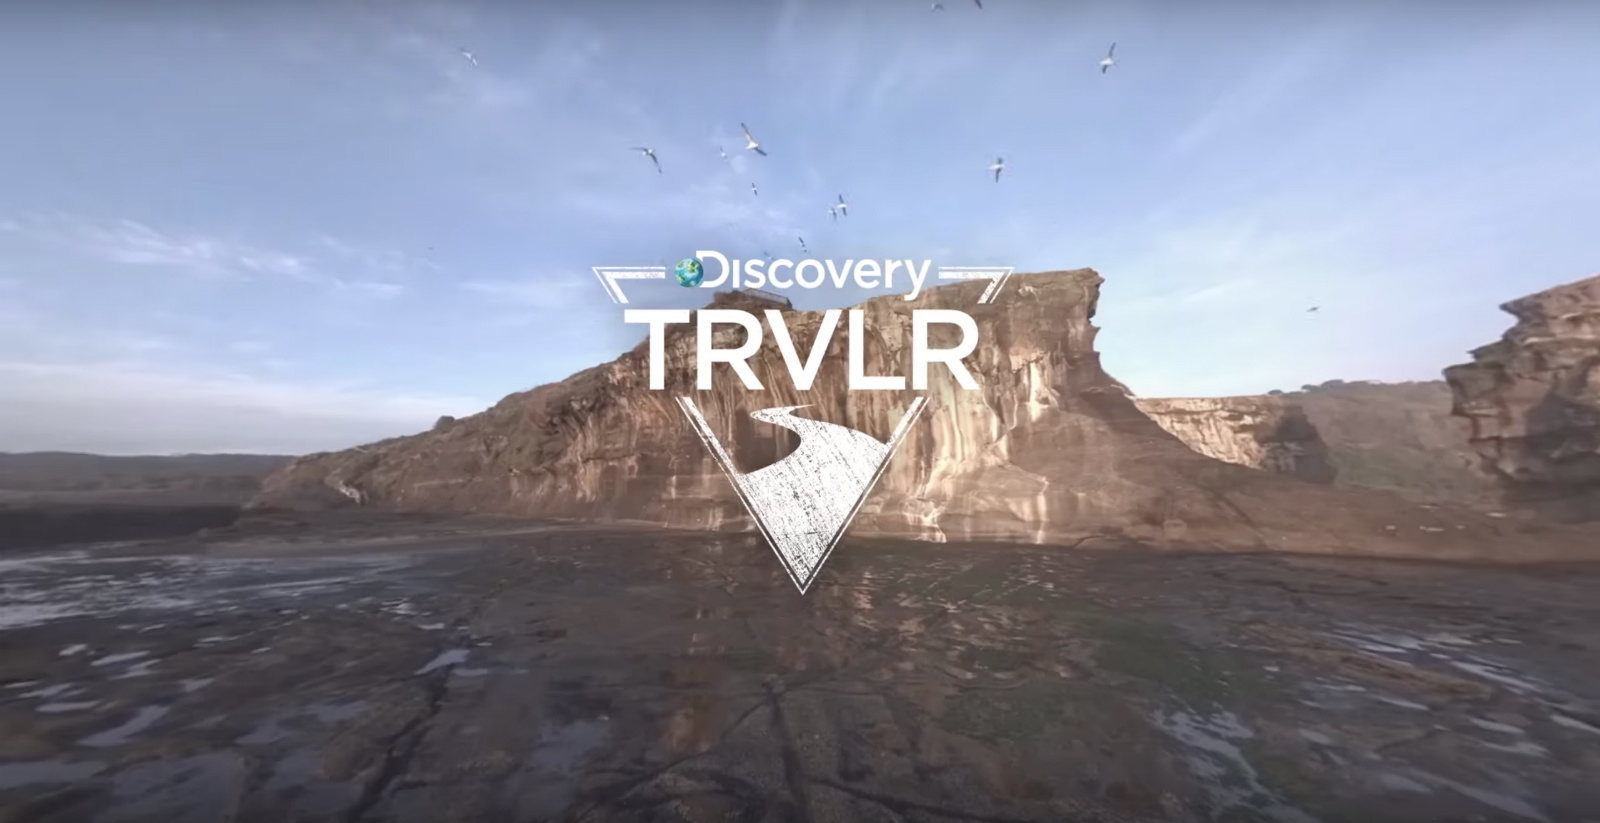 Discovery and Google took the VR-series about a trip around the world